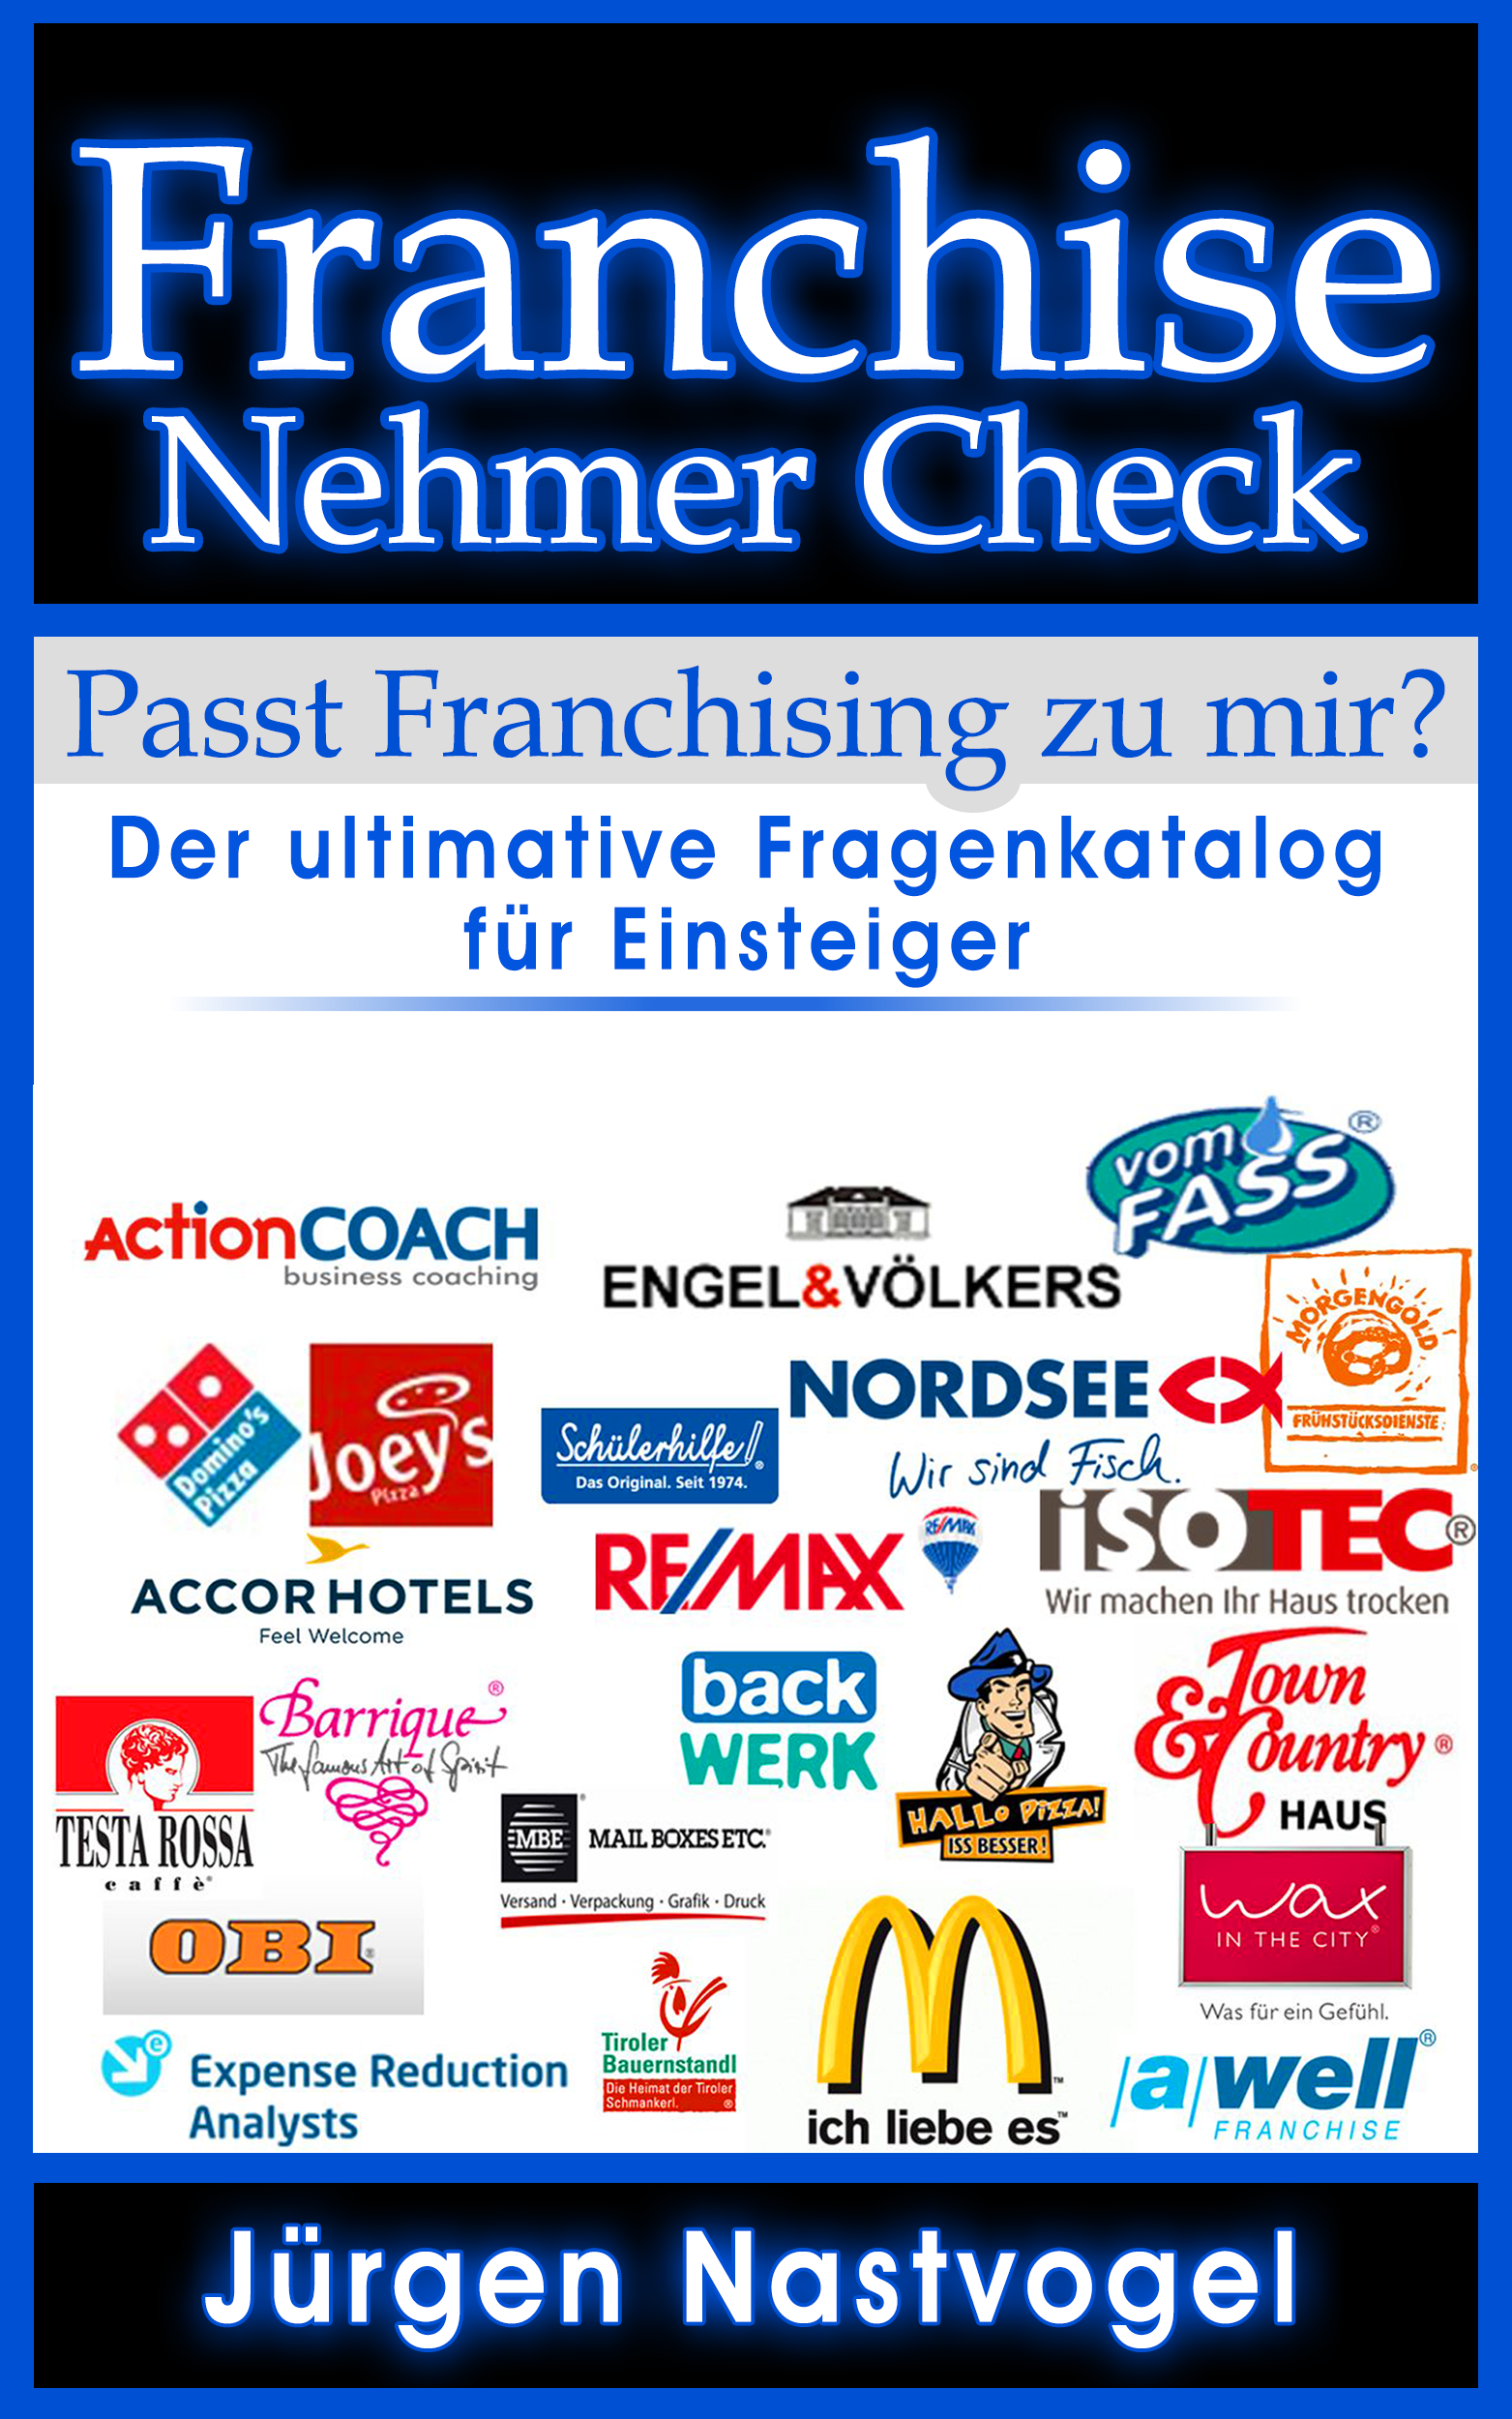 Franchise Check für Franchise Checker